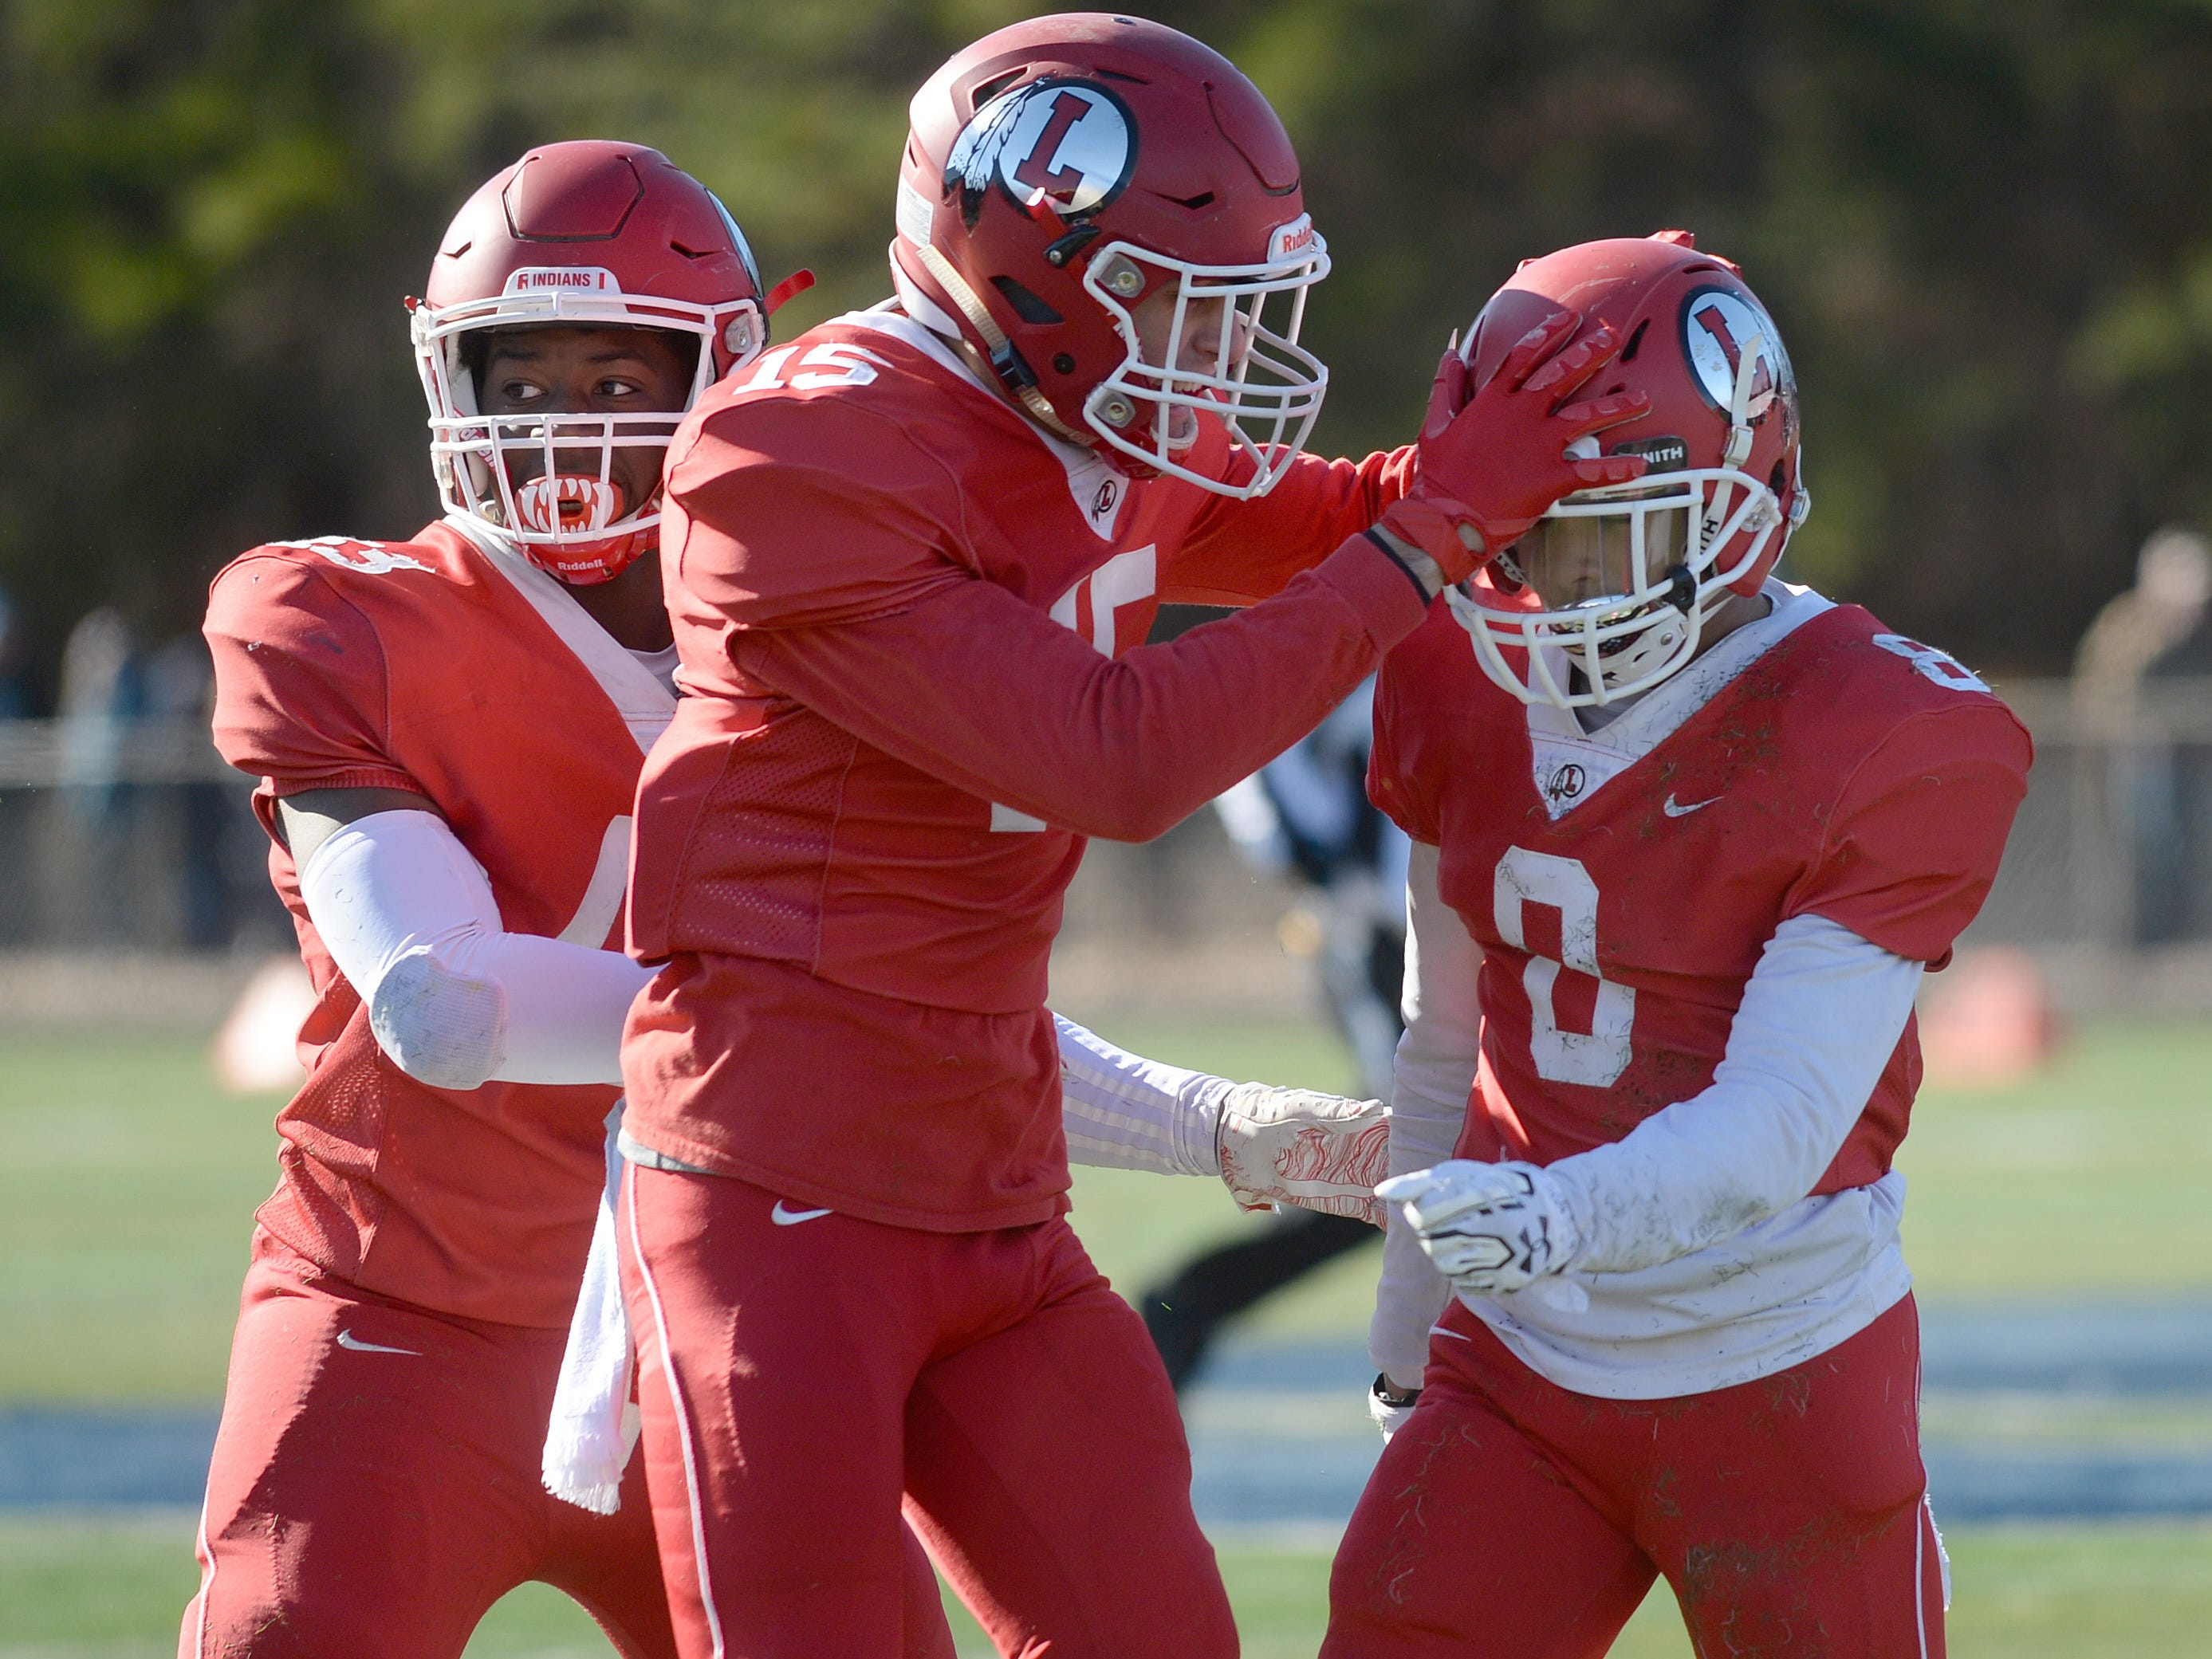 Lenape's Amir Byrd celebrates with his teammates after intercepting a Shawnee pass during the Thanksgiving Day football game at Shawnee High School, Thursday, Nov. 22, 2018.